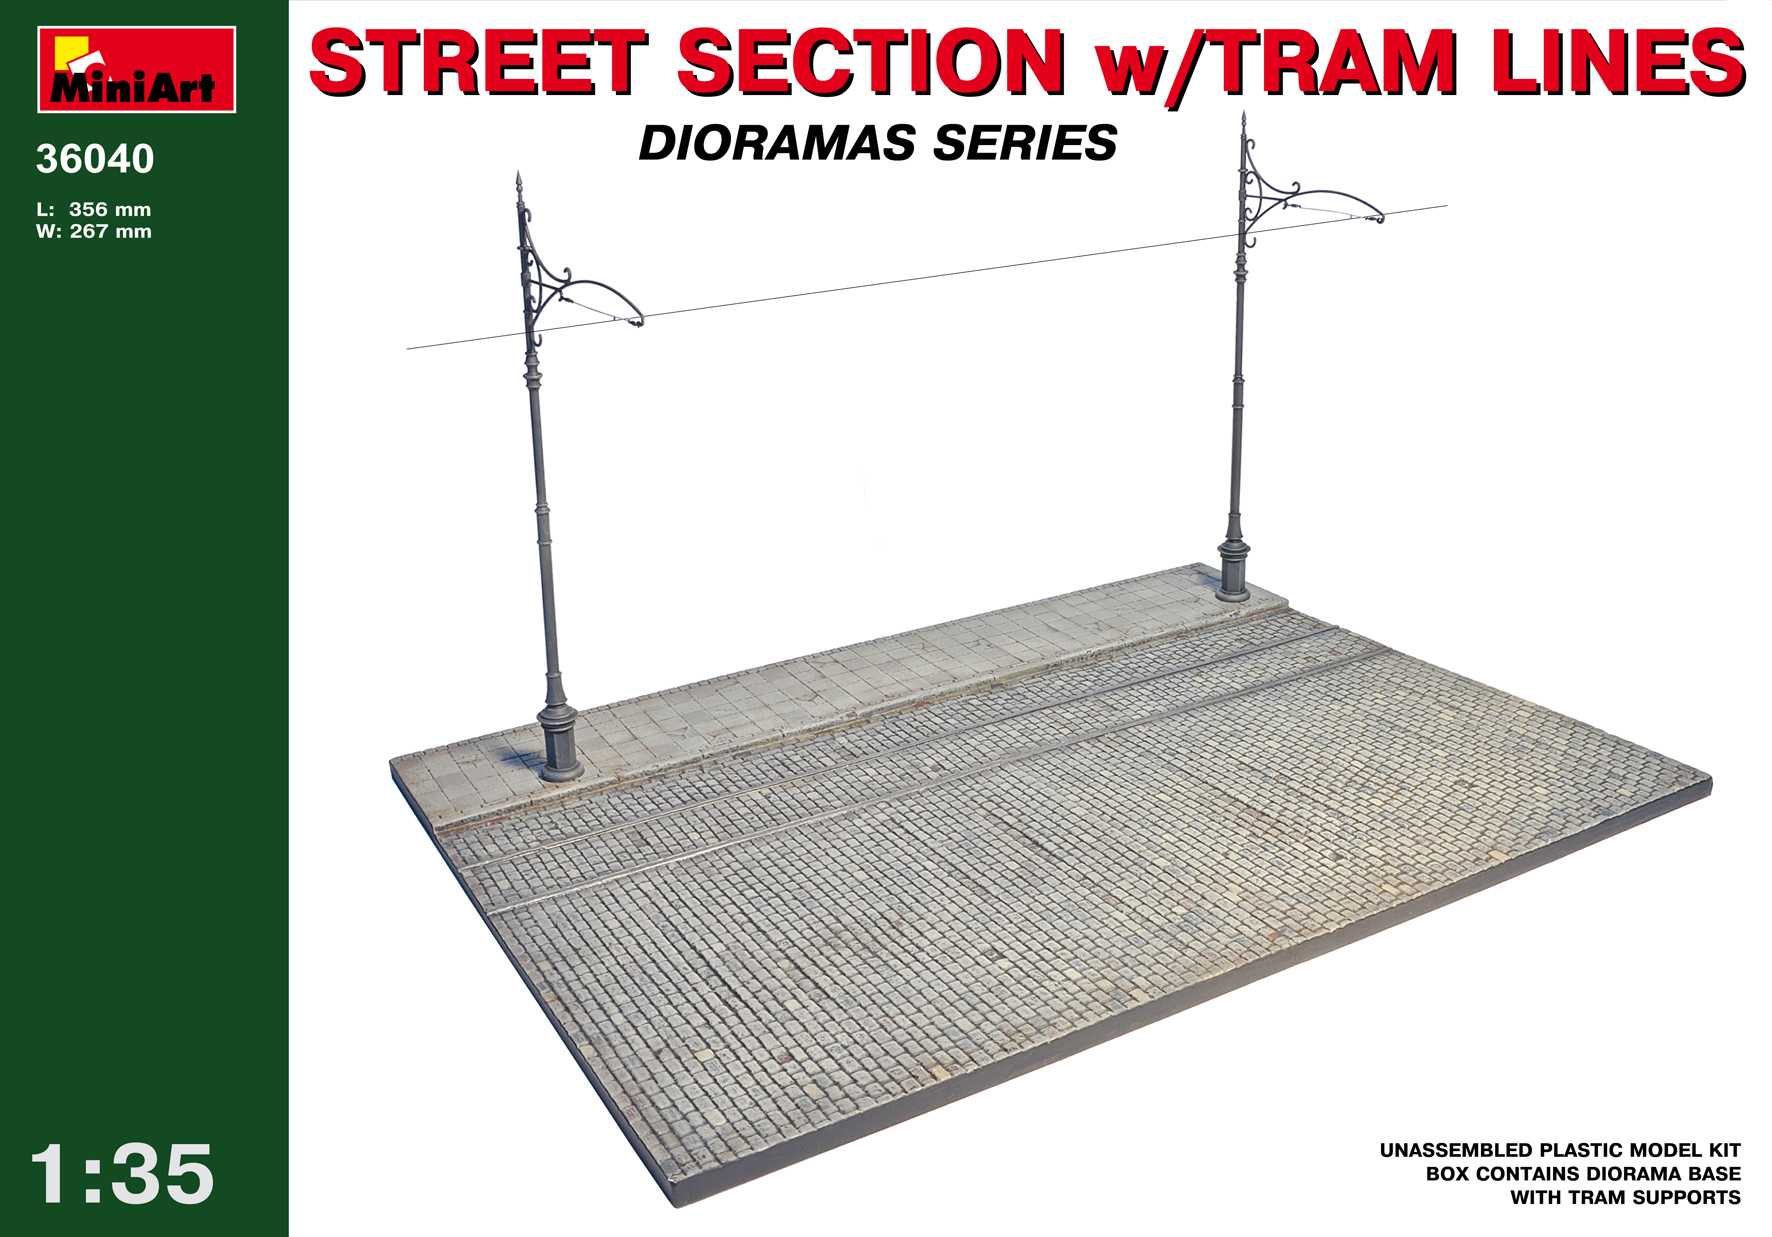 36040 STREET SECTION w/TRAM LINES